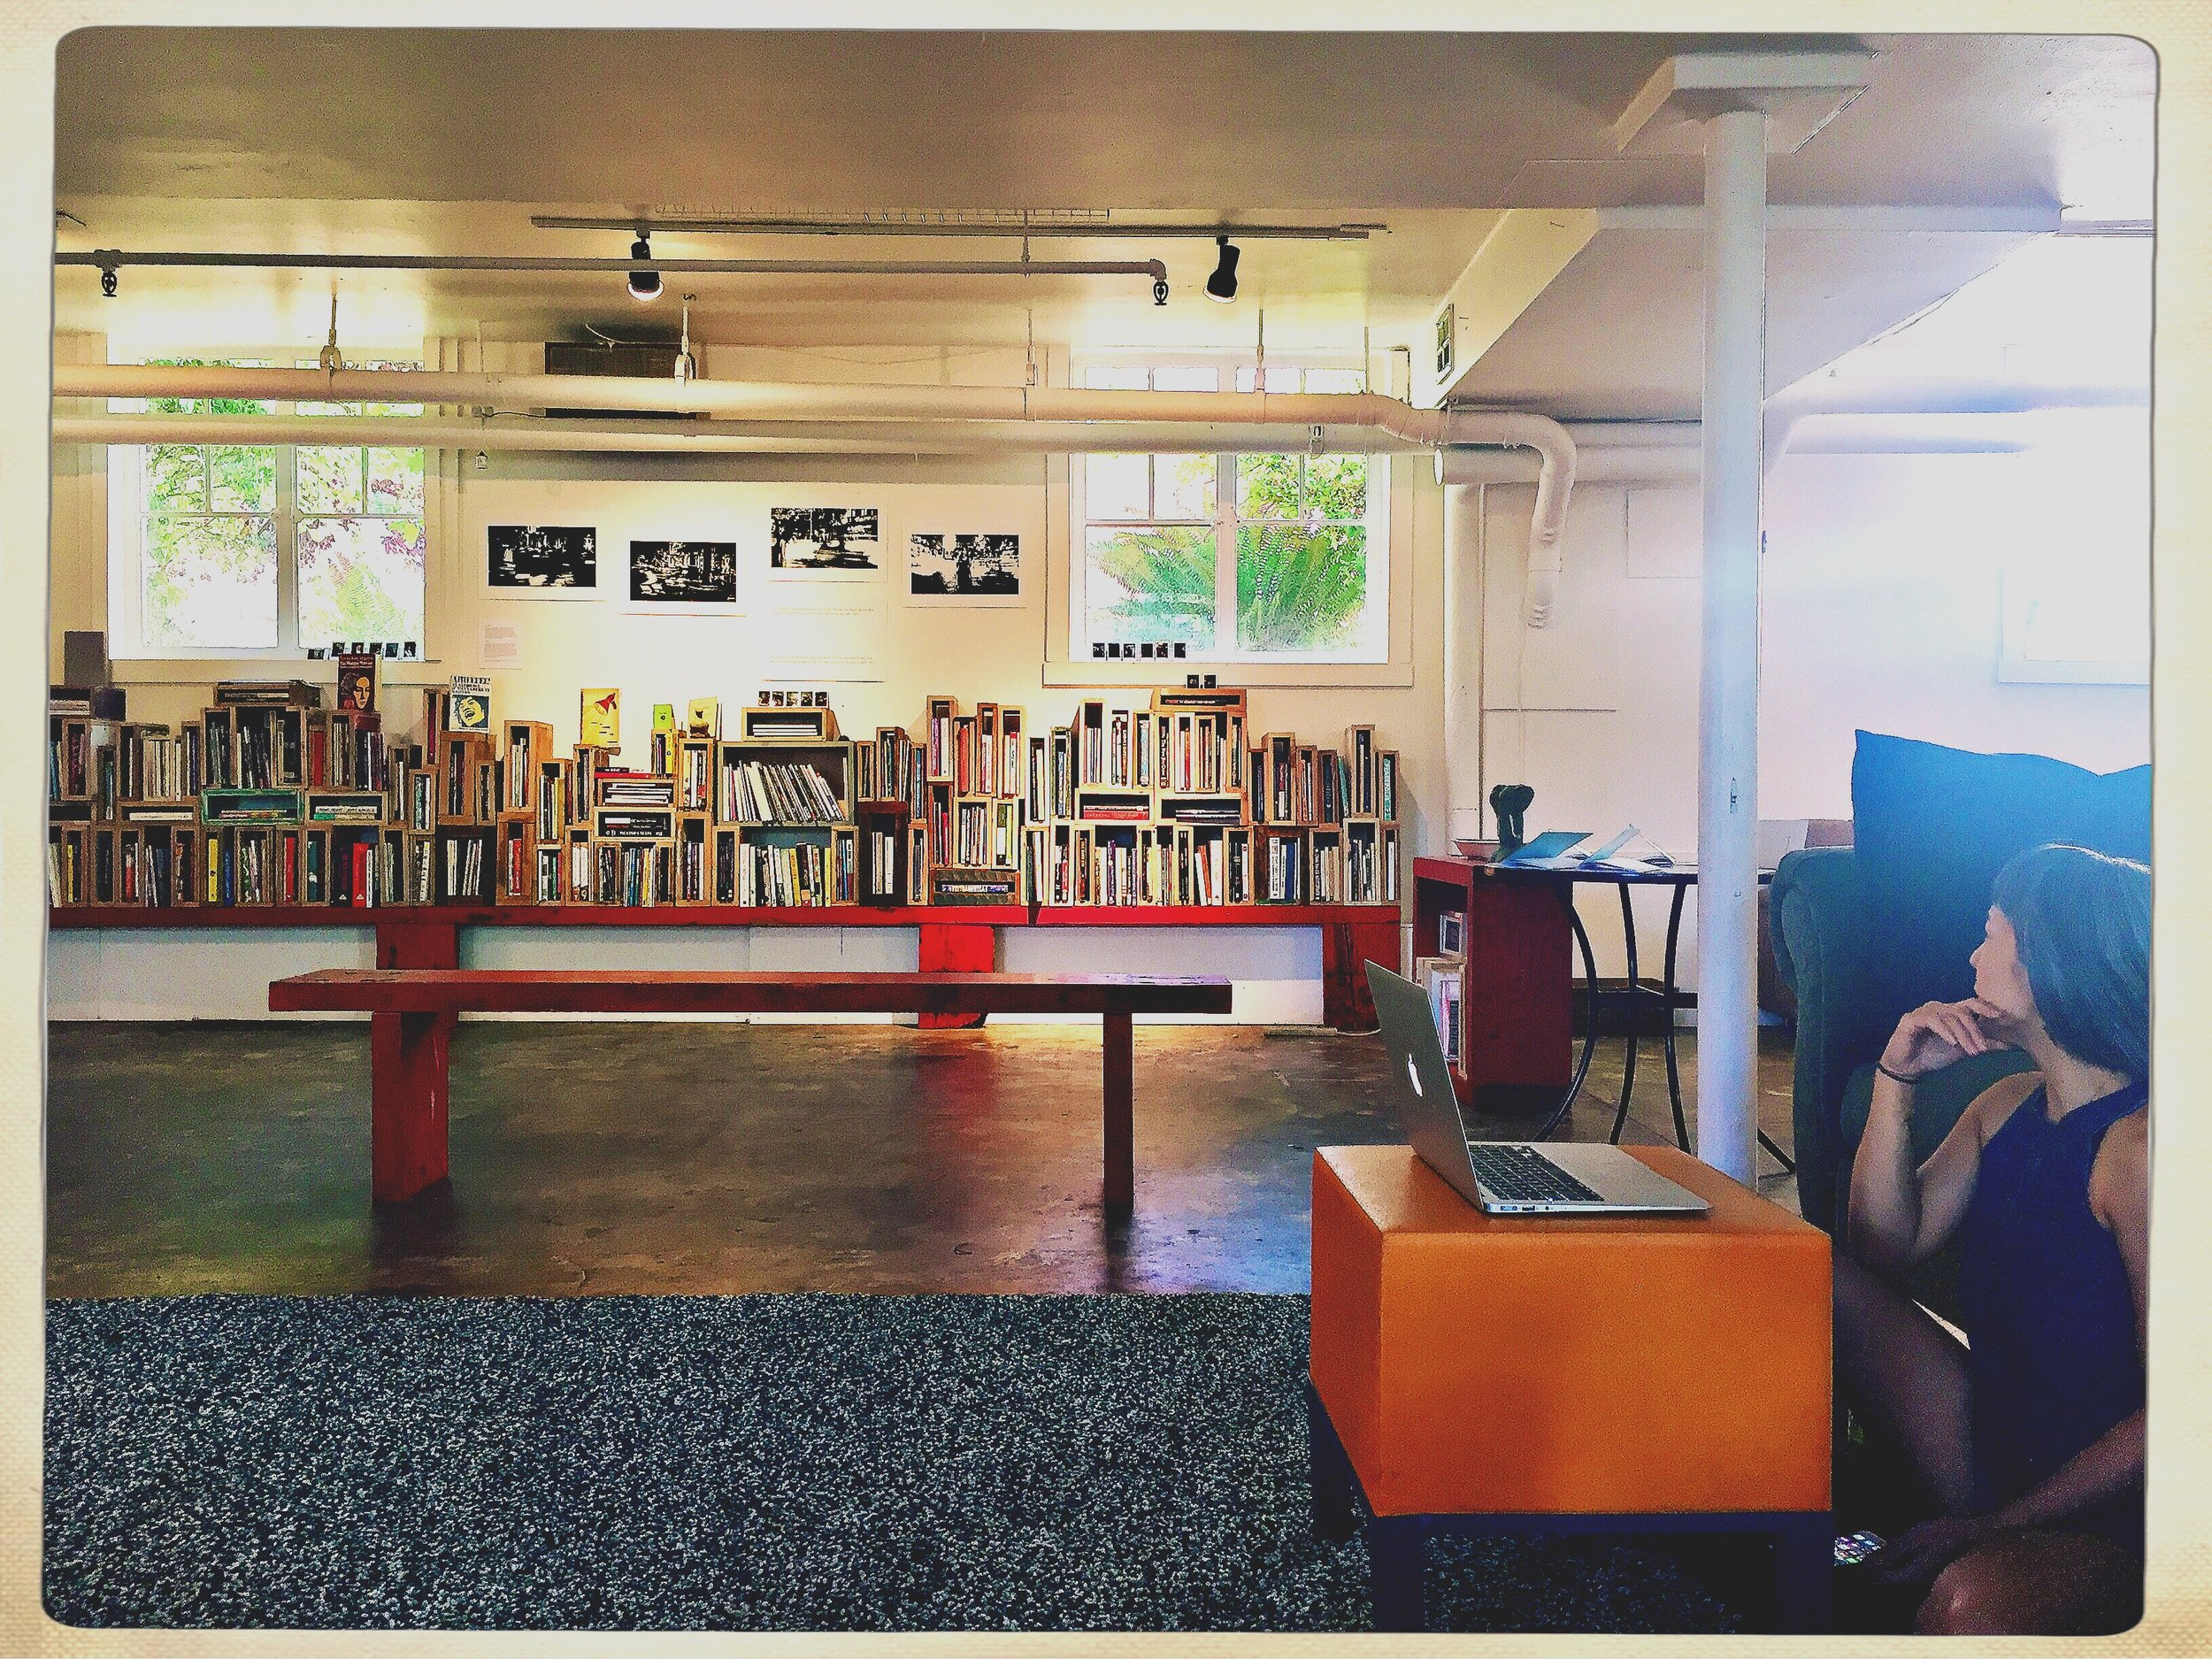 photo credit : Allison Albino (who was visiting Portland for the Tinhouse summer workshops and stopped into De-Canon during our library hours)